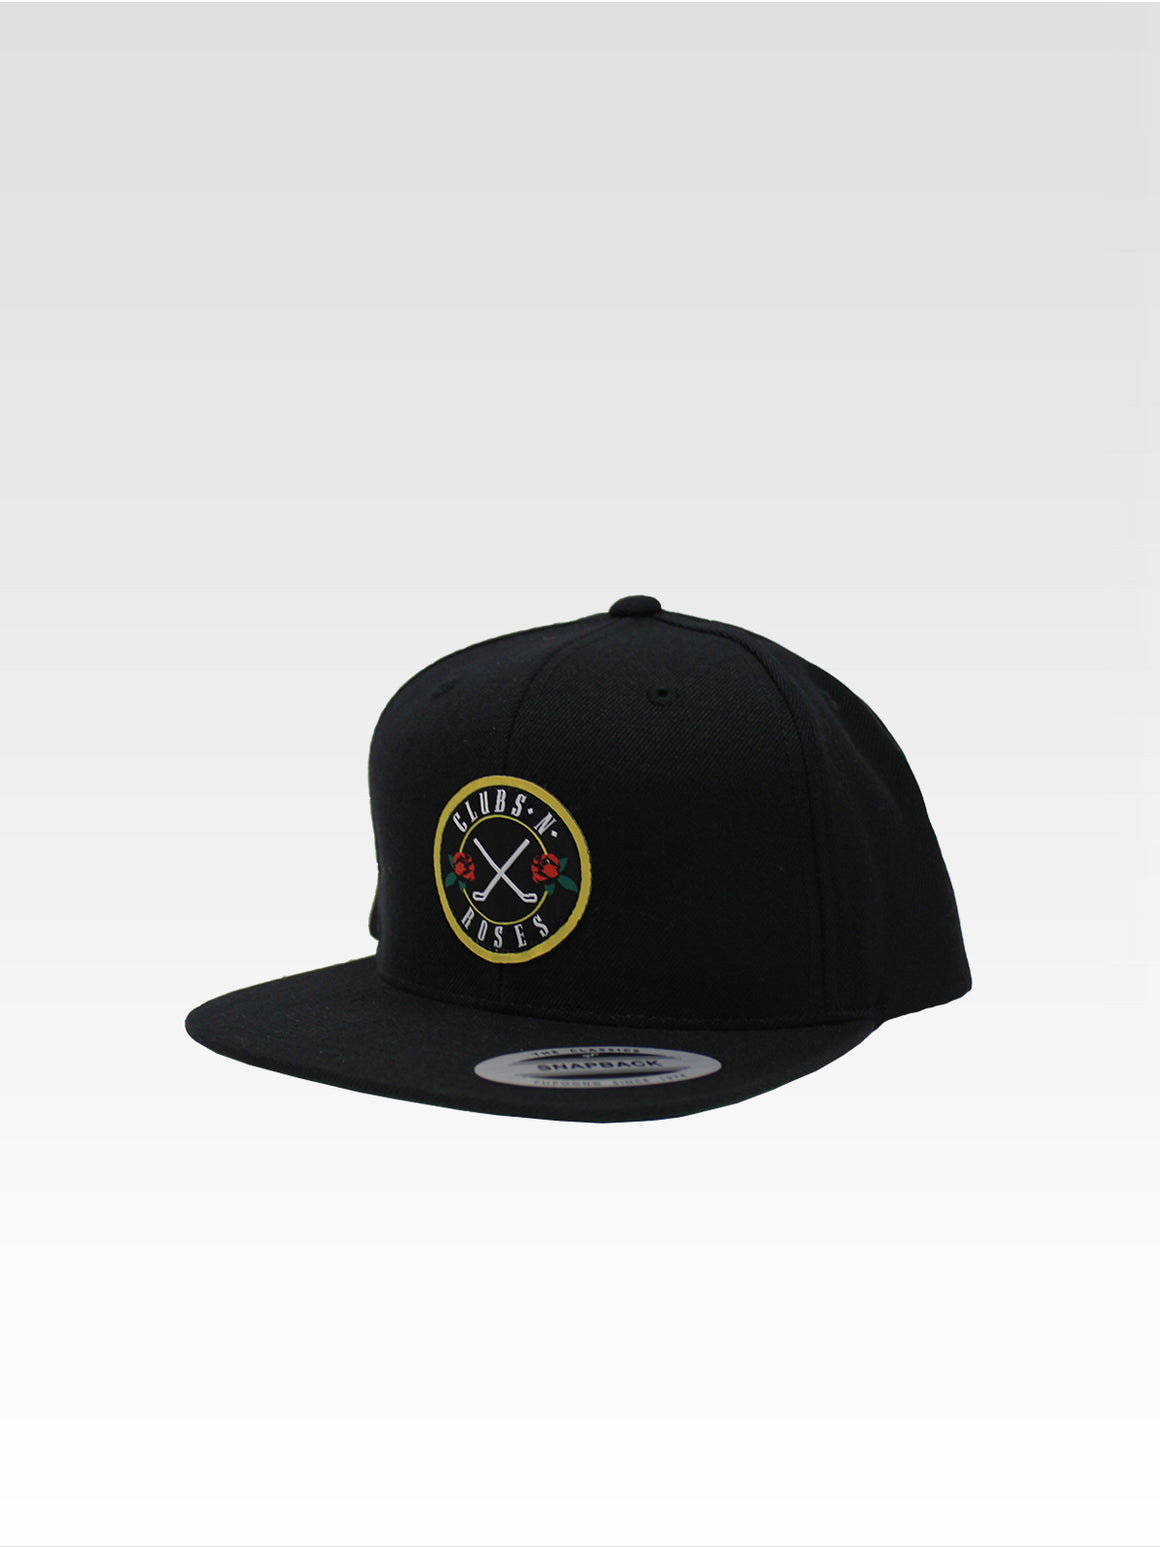 Clubs N' Roses Snapback - Black (White)